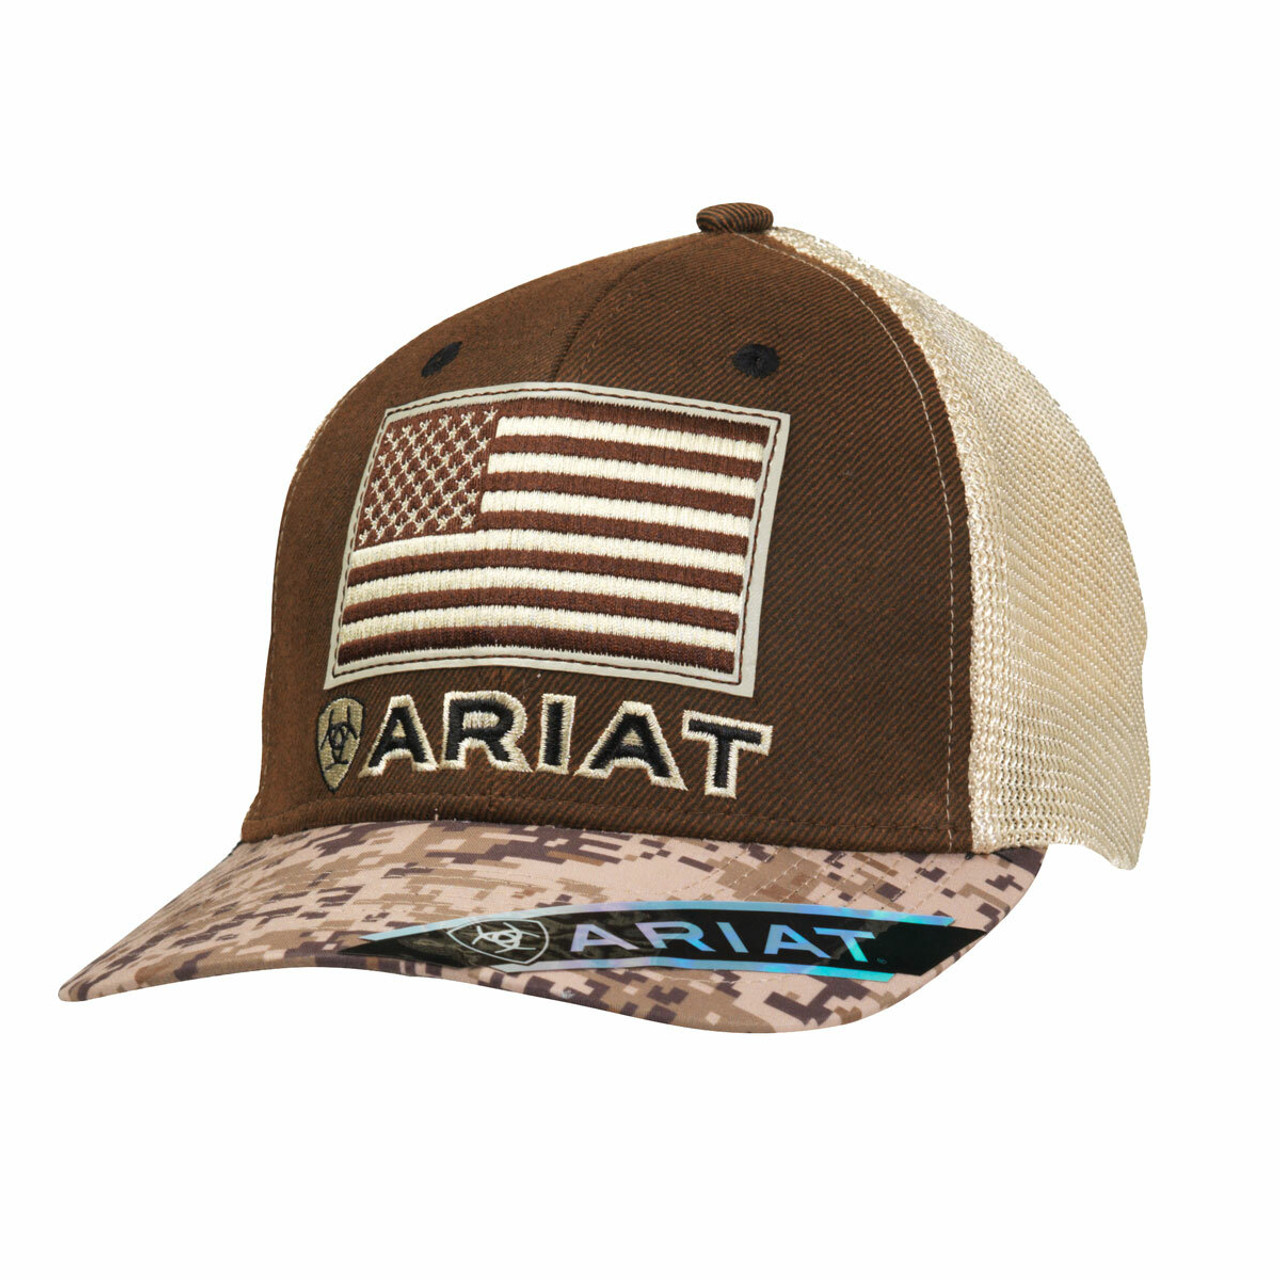 363ae3e2e4e52 Men s Ariat Digital Camo Cap by M F 1510502 - Cowtown Cowboy Outfitters